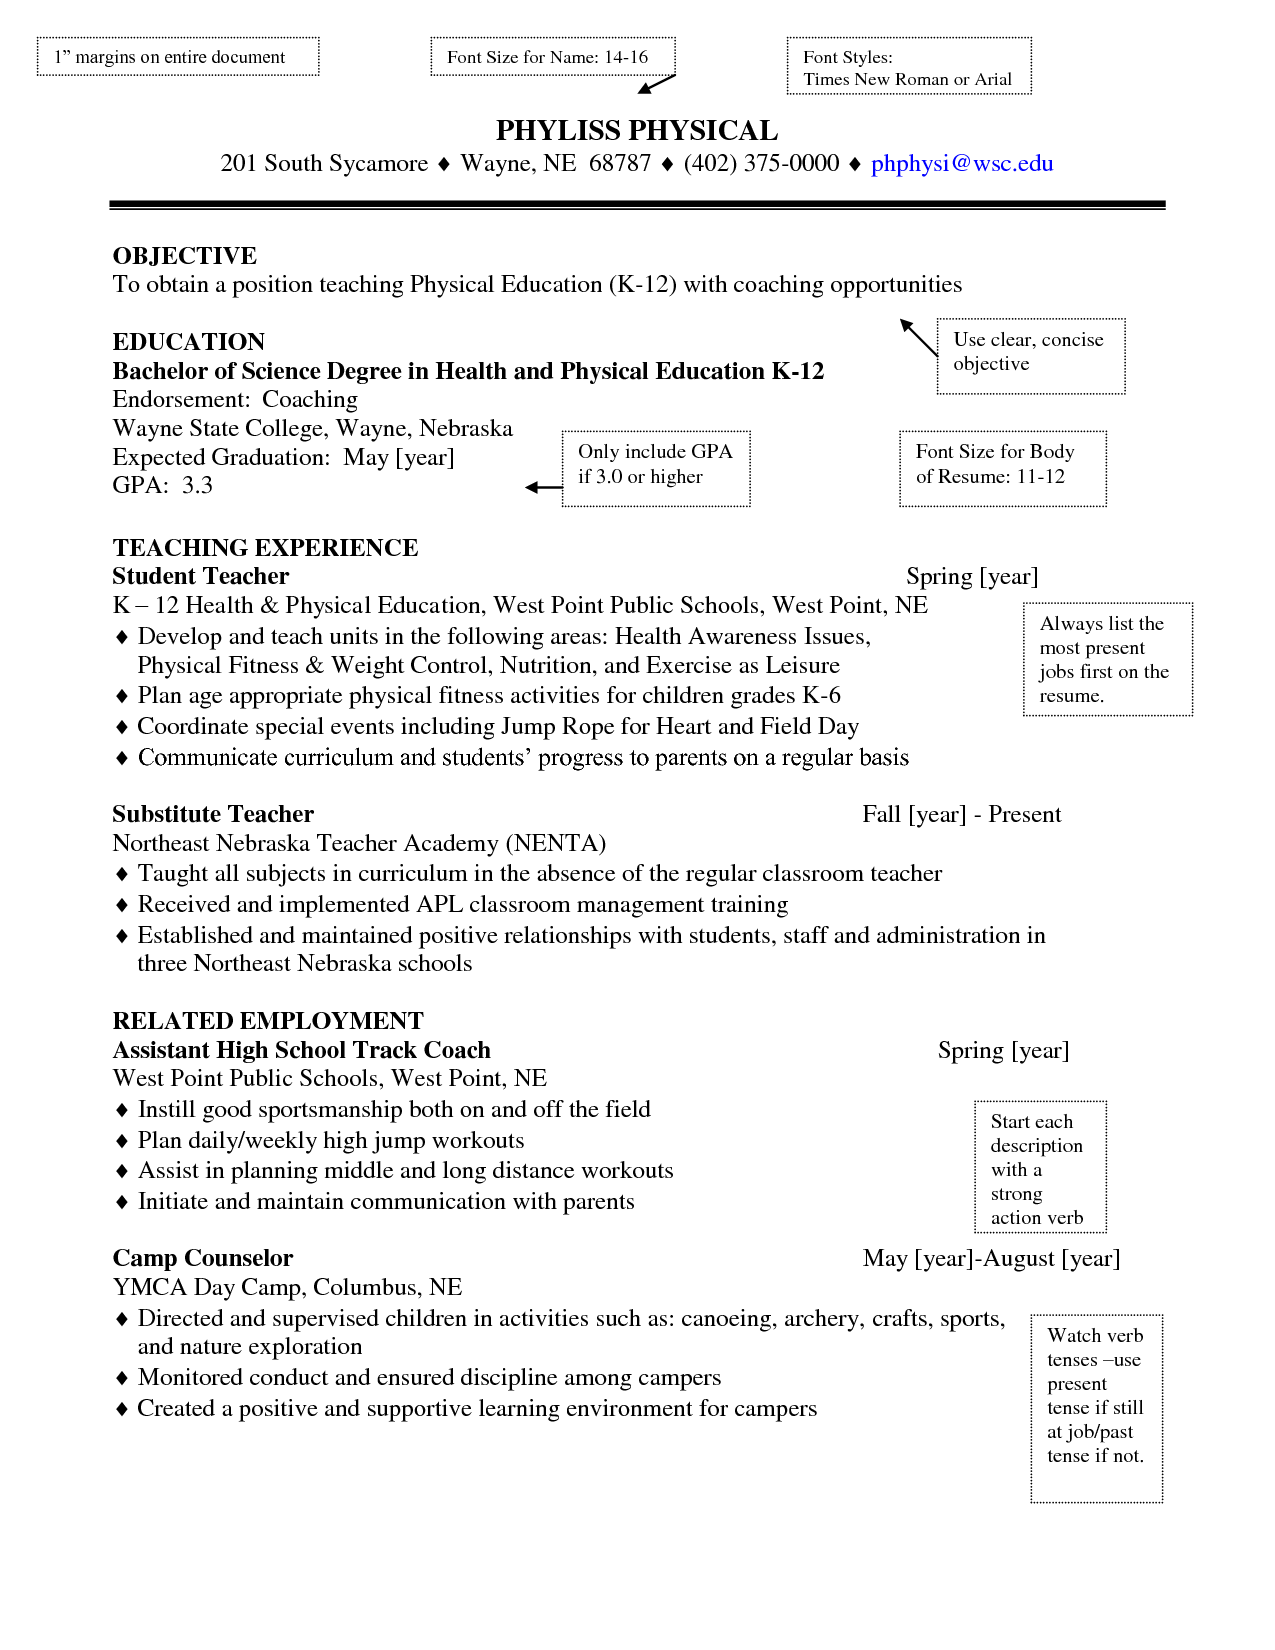 Samples Of Special Education Teacher Resumes  Physical Education Teacher Resume